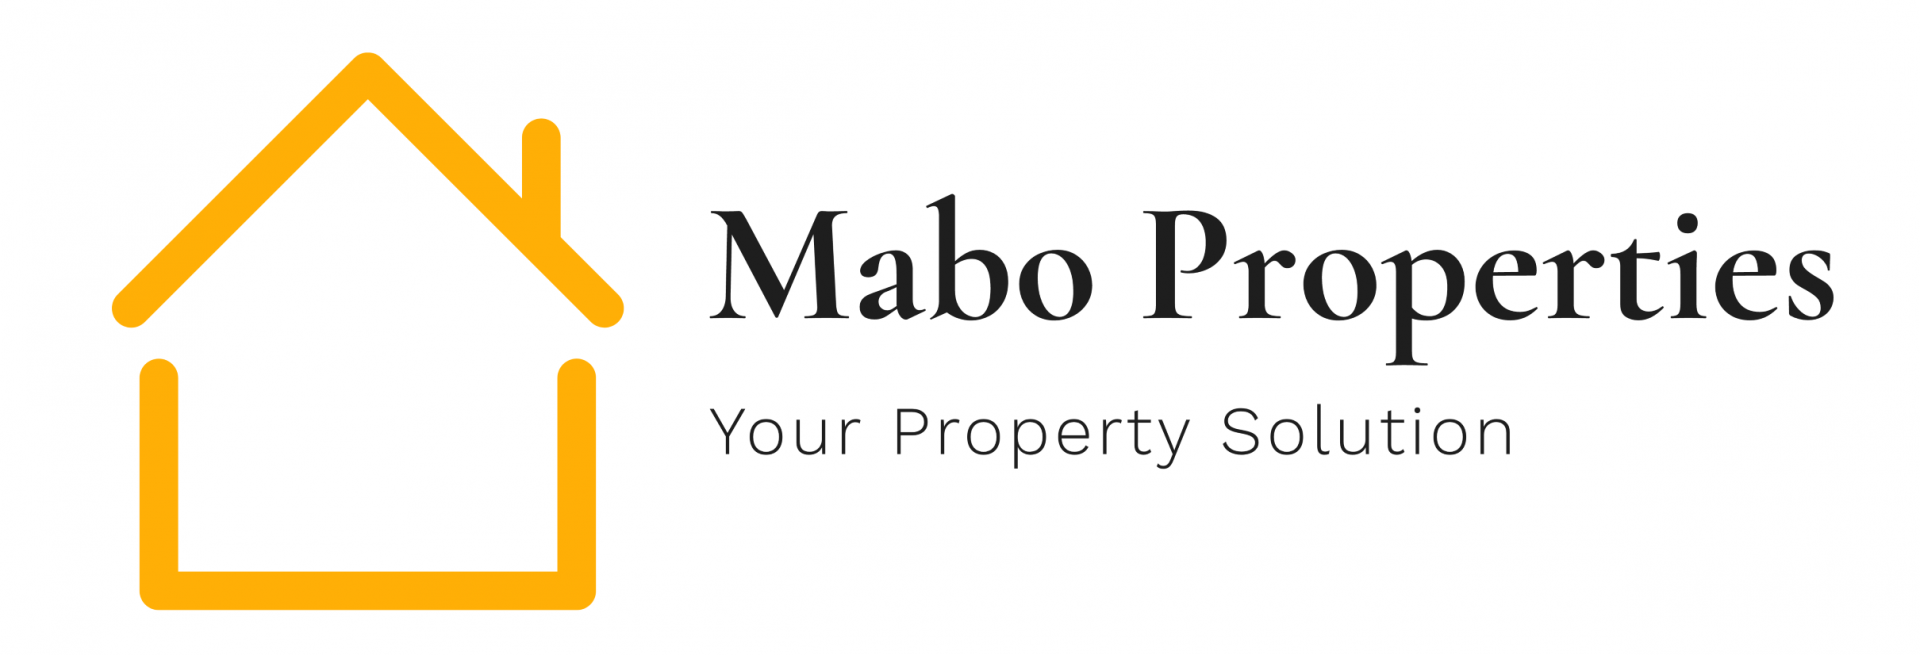 MABO Buys Properties logo